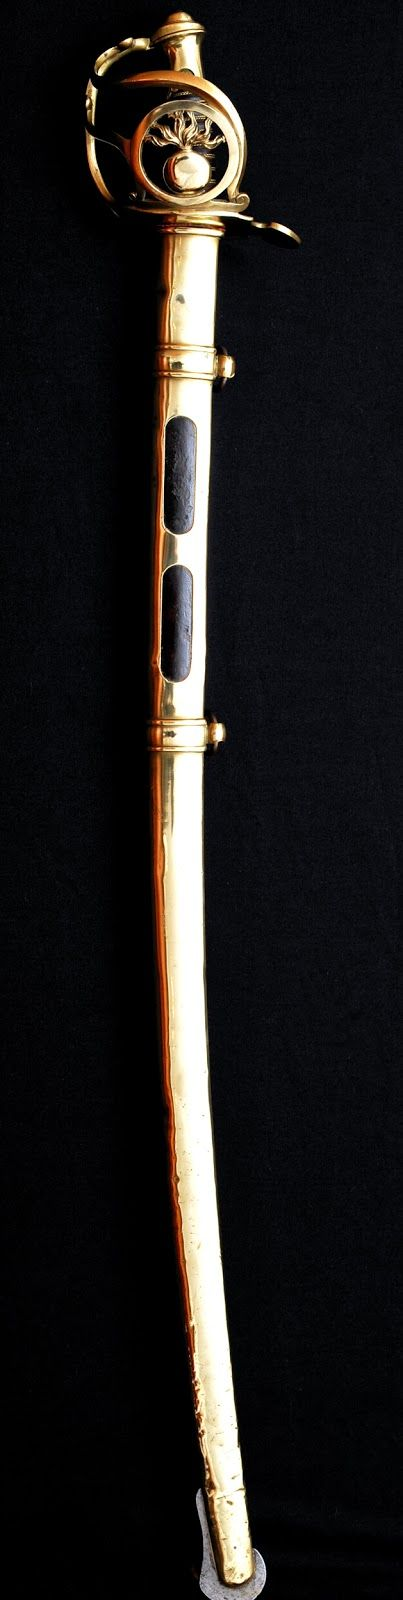 One the most beautiful and famous sword from the Napoleonic period. The Grenadier à cheval de la Garde Impériale sword third pattern. This saber is full of emotion and glory, the blade has heavy signs of wear from combat. The copper scabbard has spurs wears from the Spanish war, the Russian campaign or Waterloo . Dated from June 1811, month of the baptism of the king of Rome, Napoleon's son and retreat from Portugal by Wellington. The best sword I ever owned...